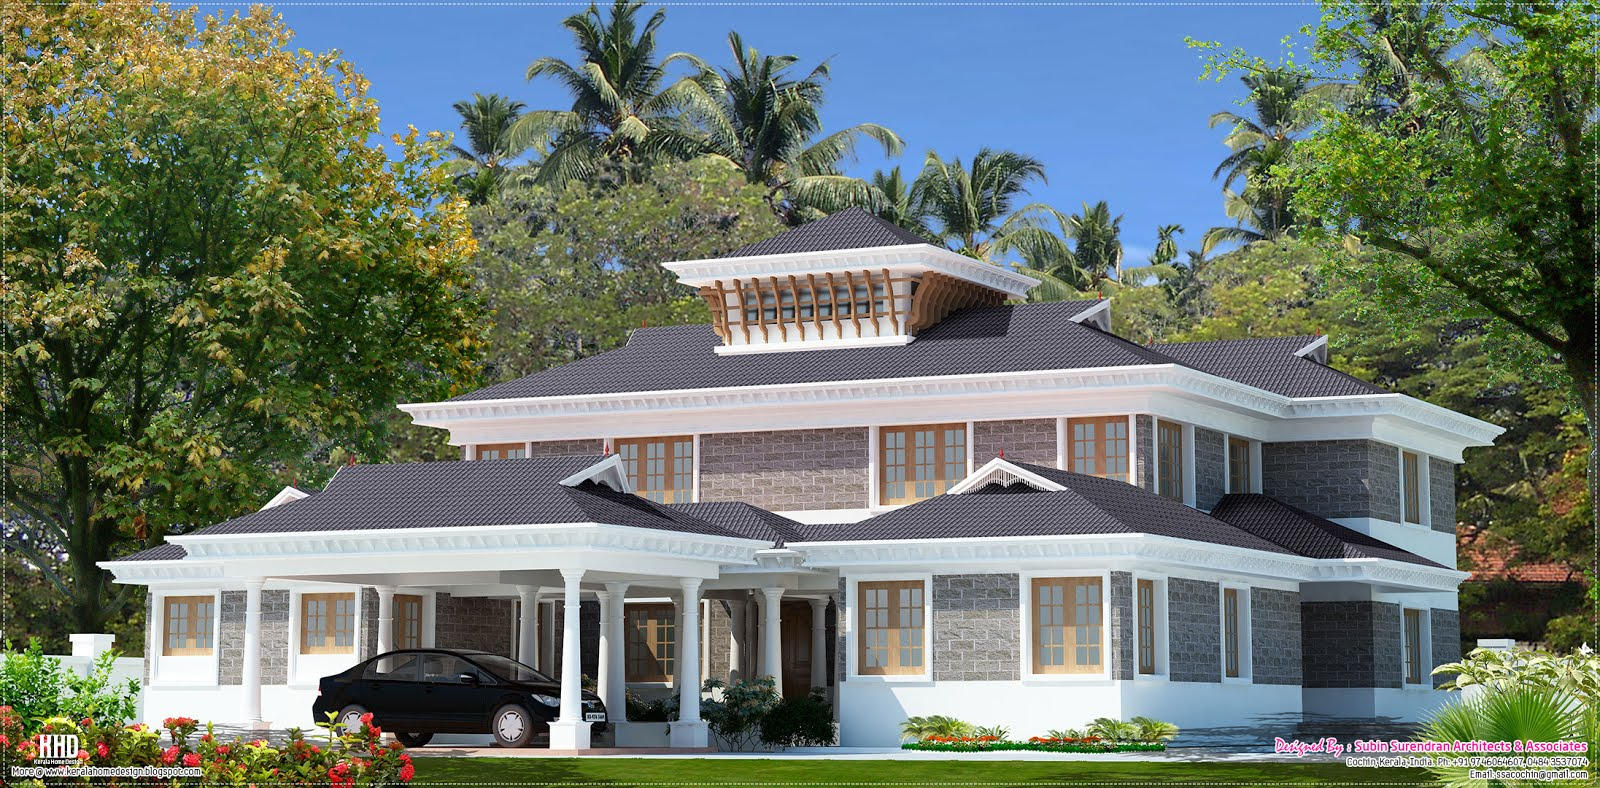 5000 luxury villa design kerala home design and for 5000 sq ft home